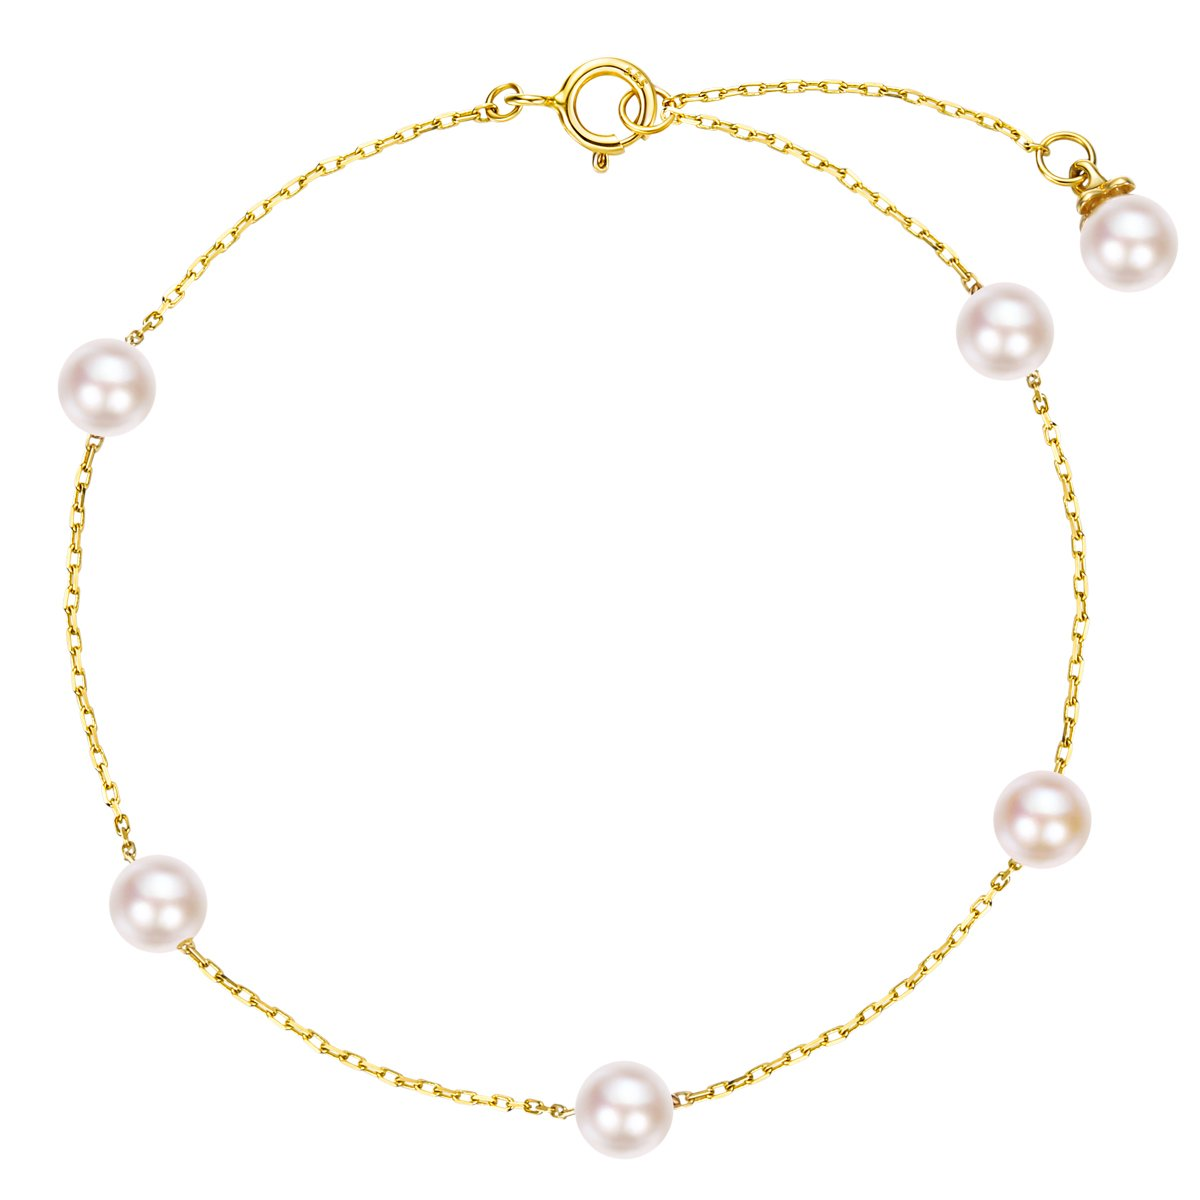 Carleen Solid 14K Yellow Gold Dainty Delicate Pearl Bracelets for Women Girls Gifts for Valentine/'s Day 6.70+1.20 inch 3260